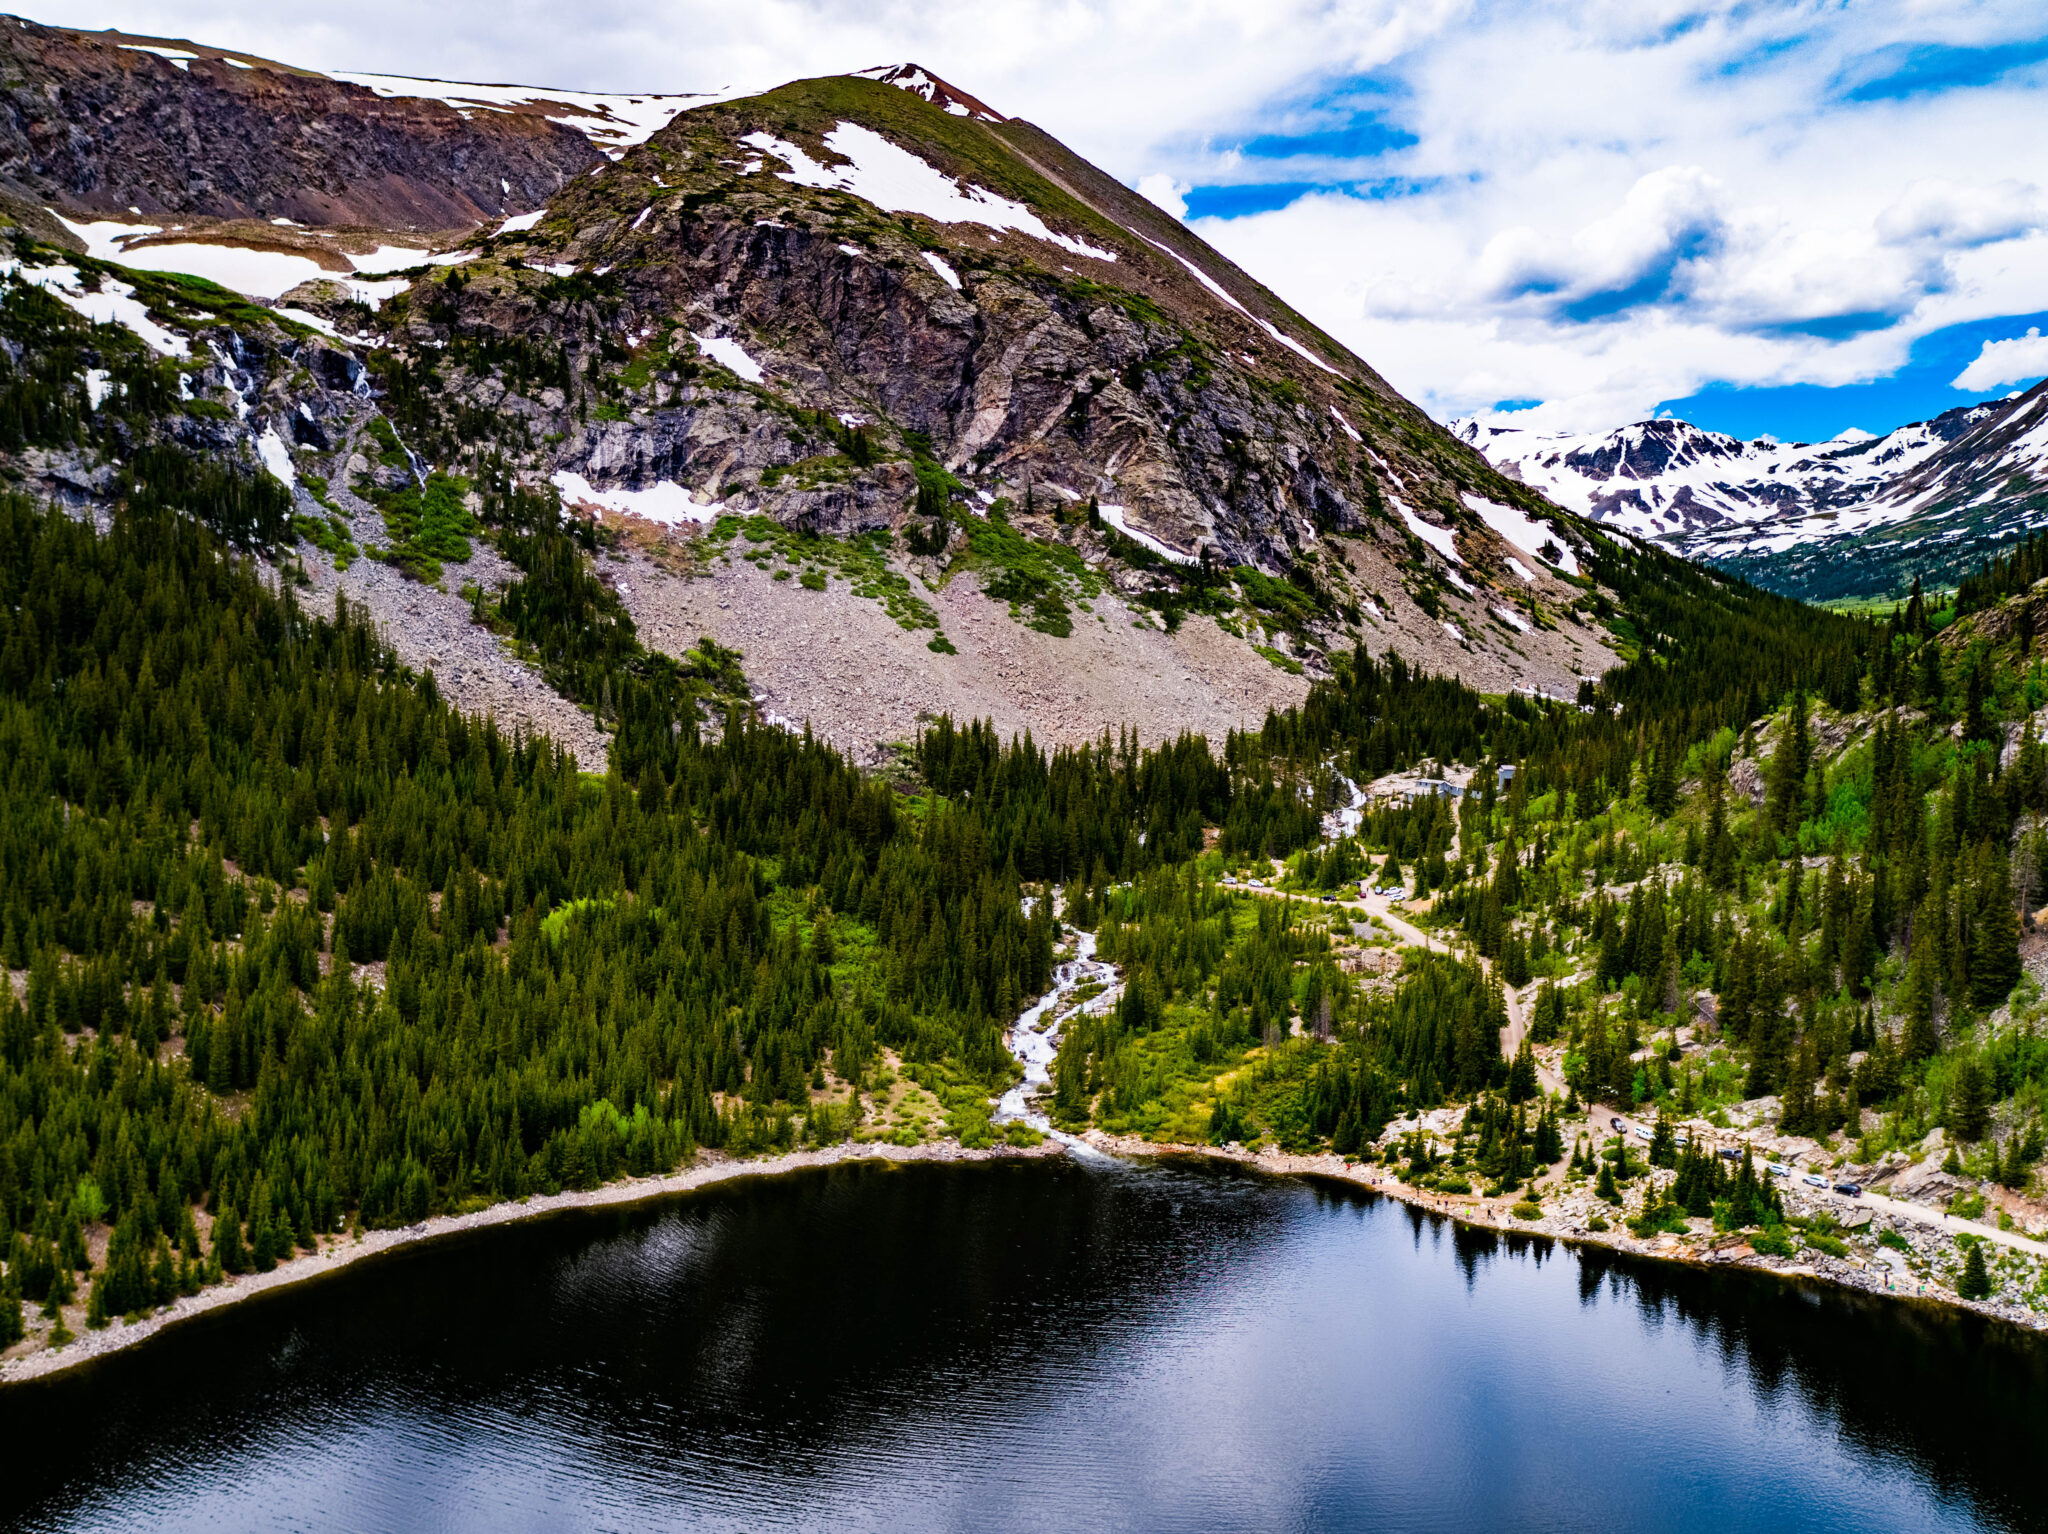 Mountain with lake and waterfall